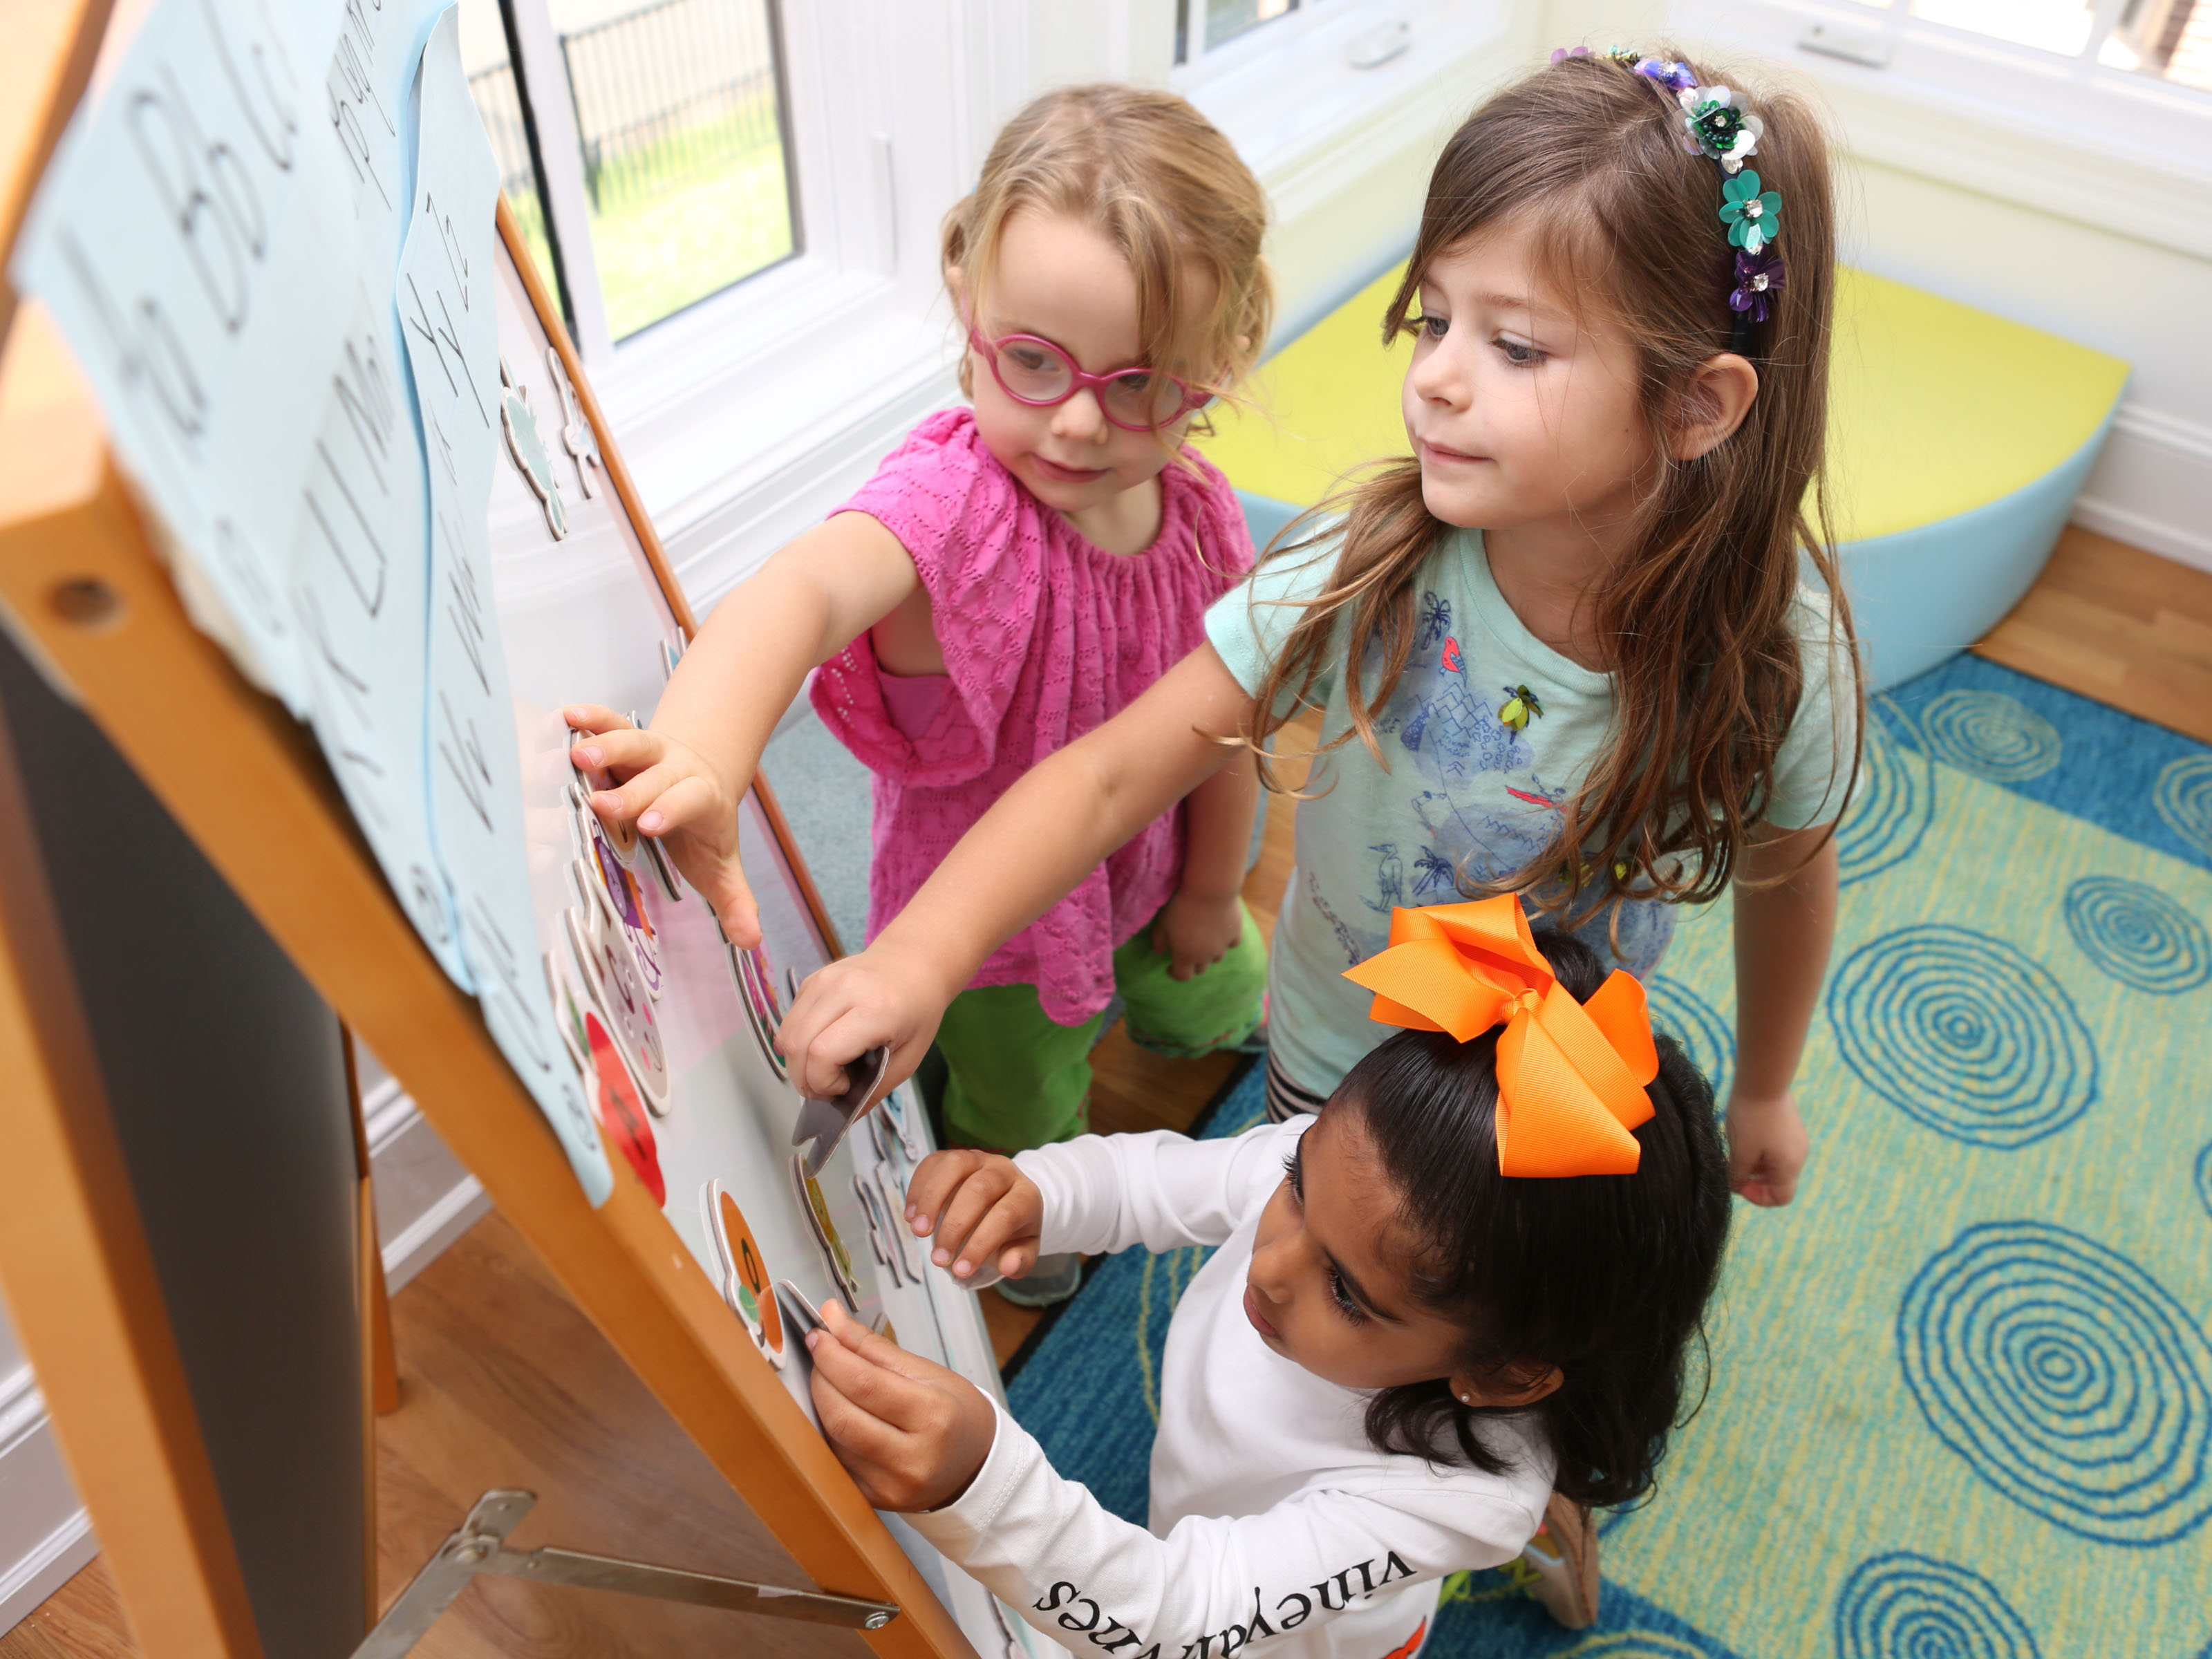 Early Education At St. Catherine's Establishes Foundation For Learning